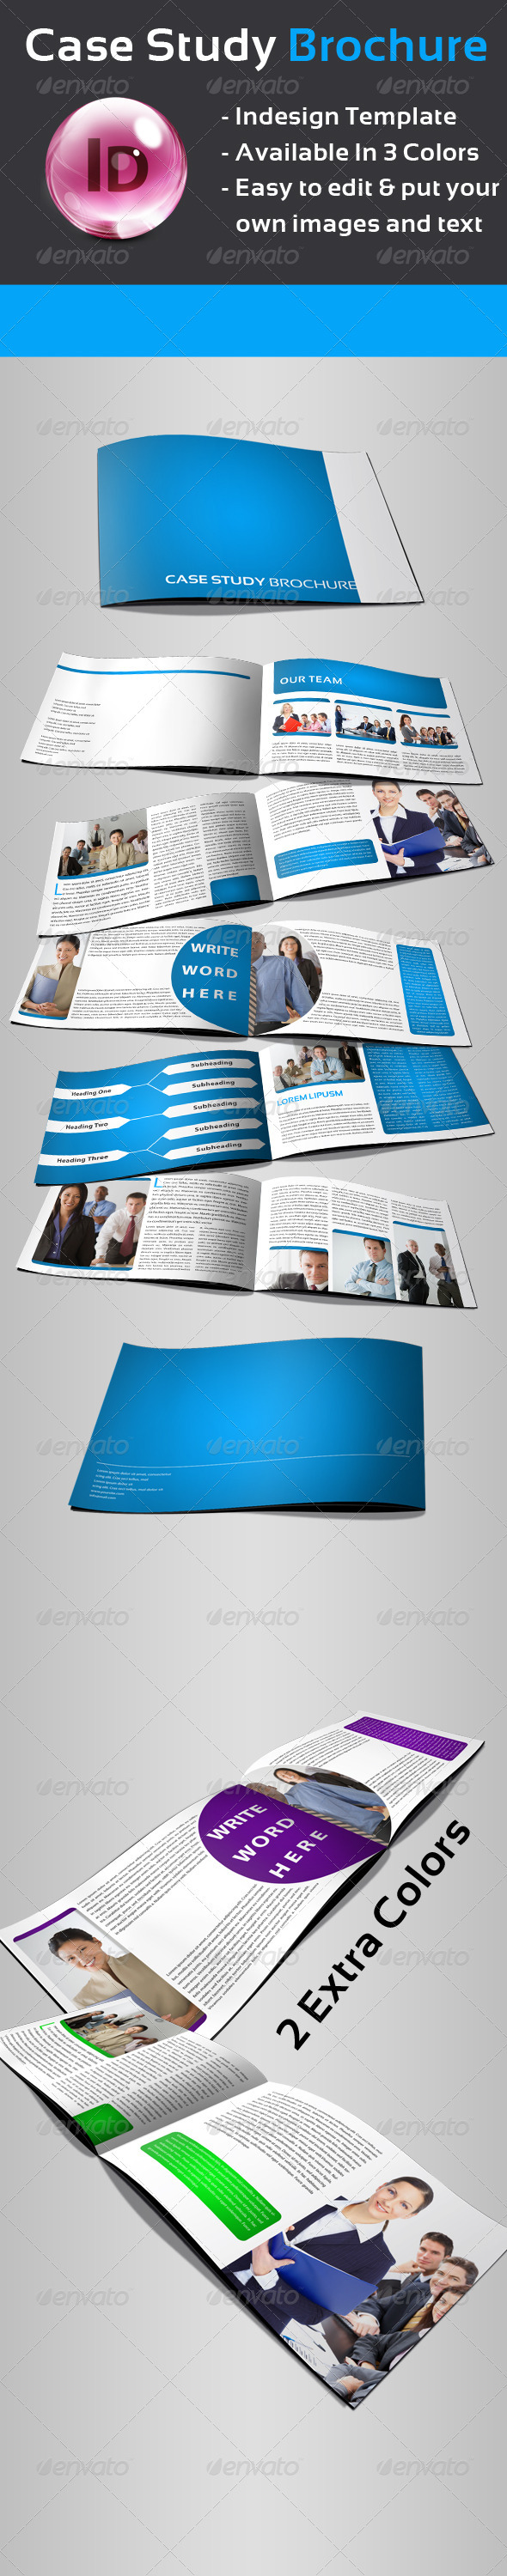 Case Study Brochure - Corporate Brochures